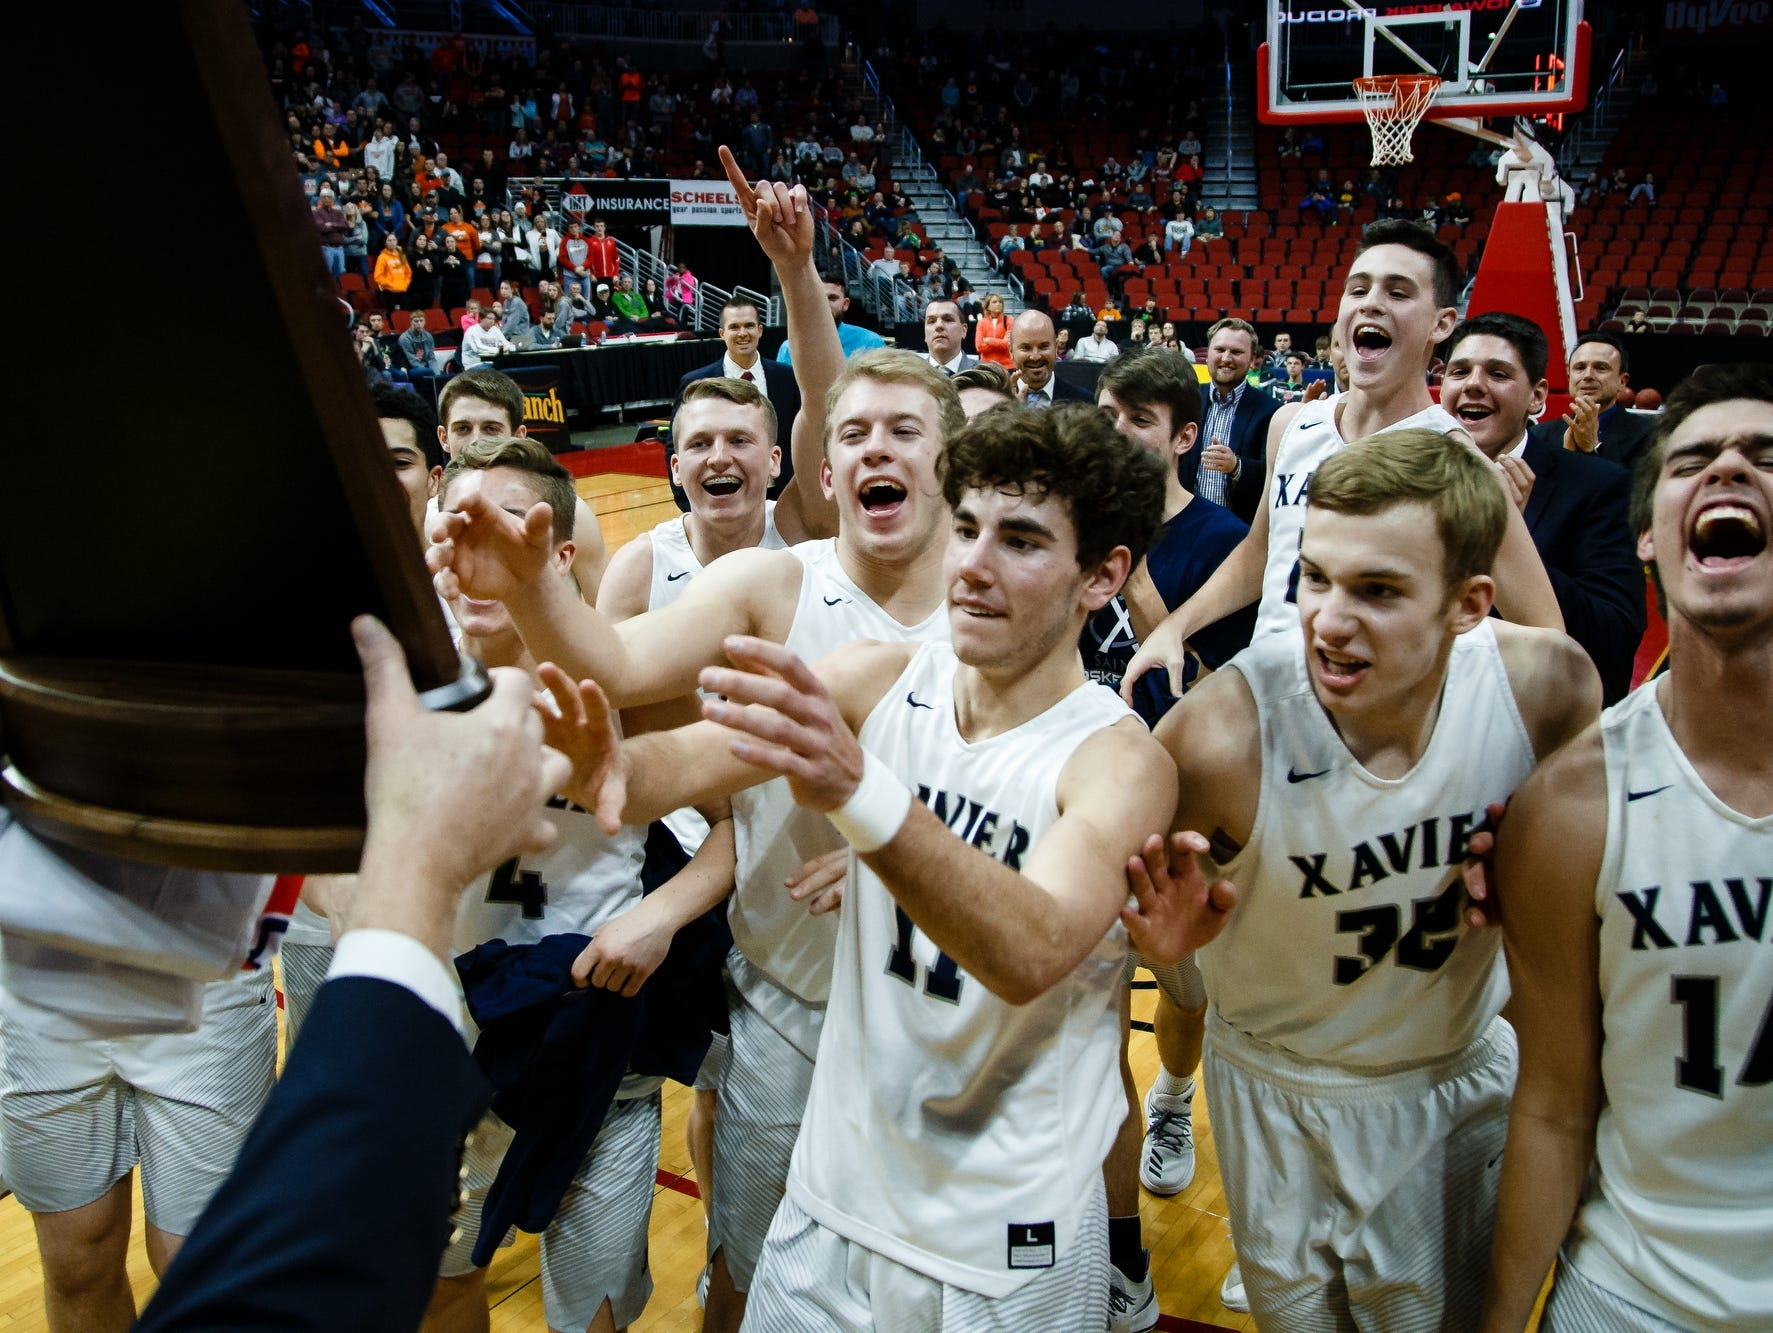 Cedar Rapids, Xavier gets their trophy after defeating Sergeant Bluff-Luton during their 3A state basketball championship game on Saturday, March 11, 2017, in Des Moines. Cedar Rapids, Xavier won 54-49.